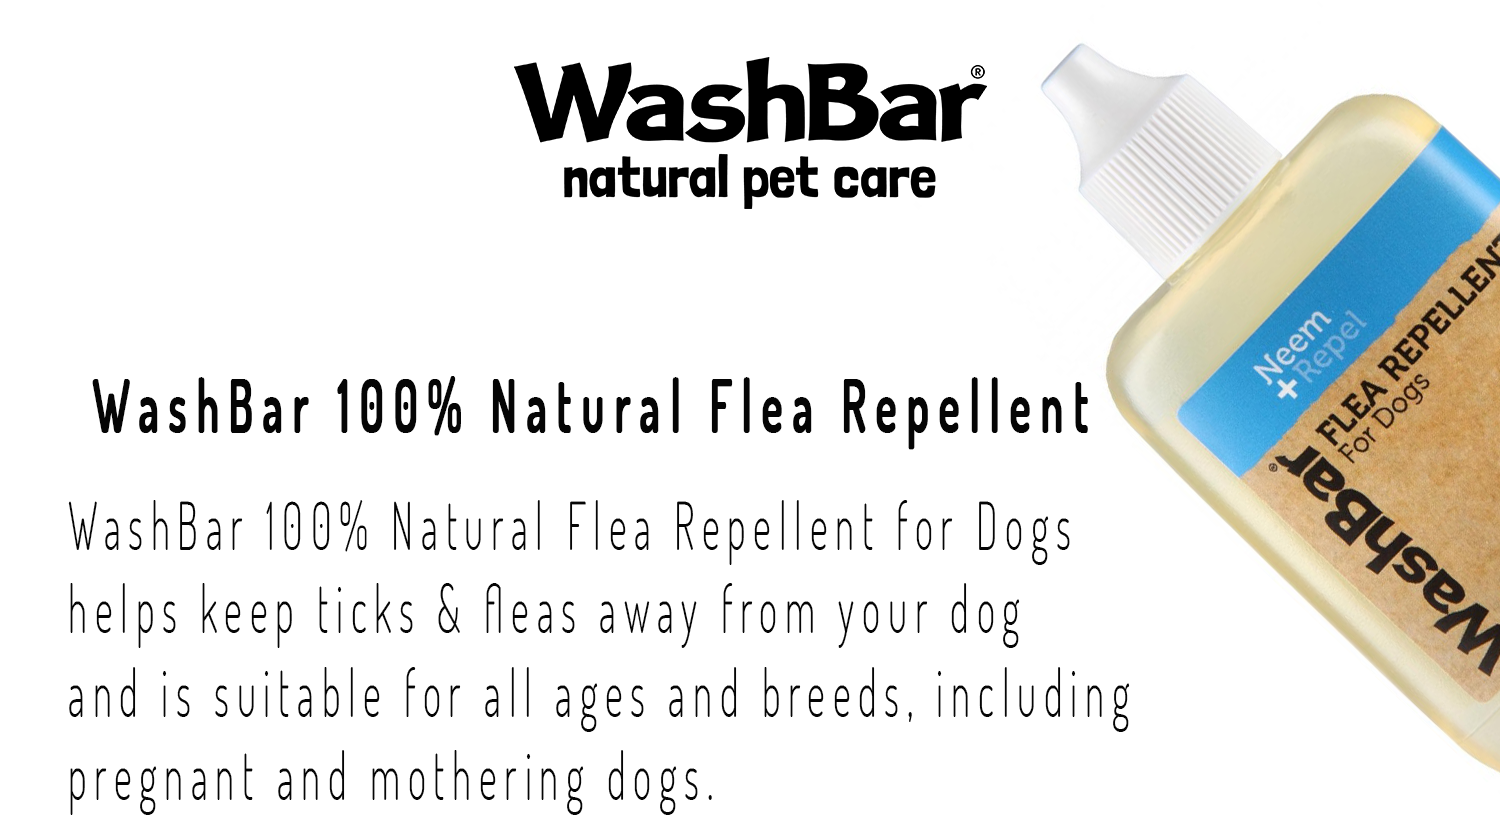 flea repellent1.png